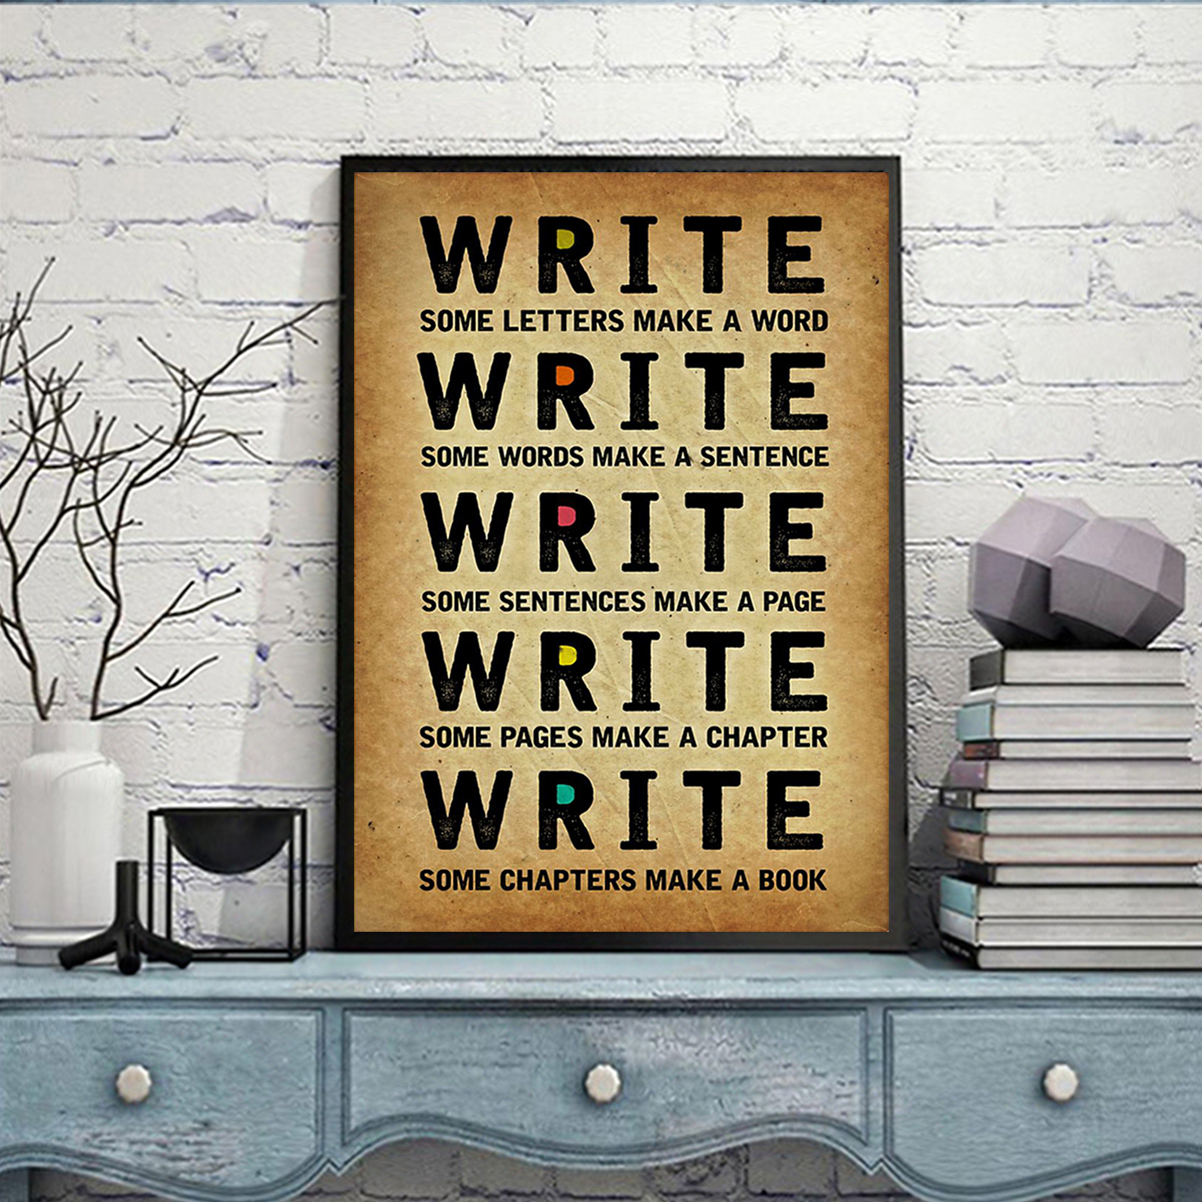 Write some letters make a word poster A3